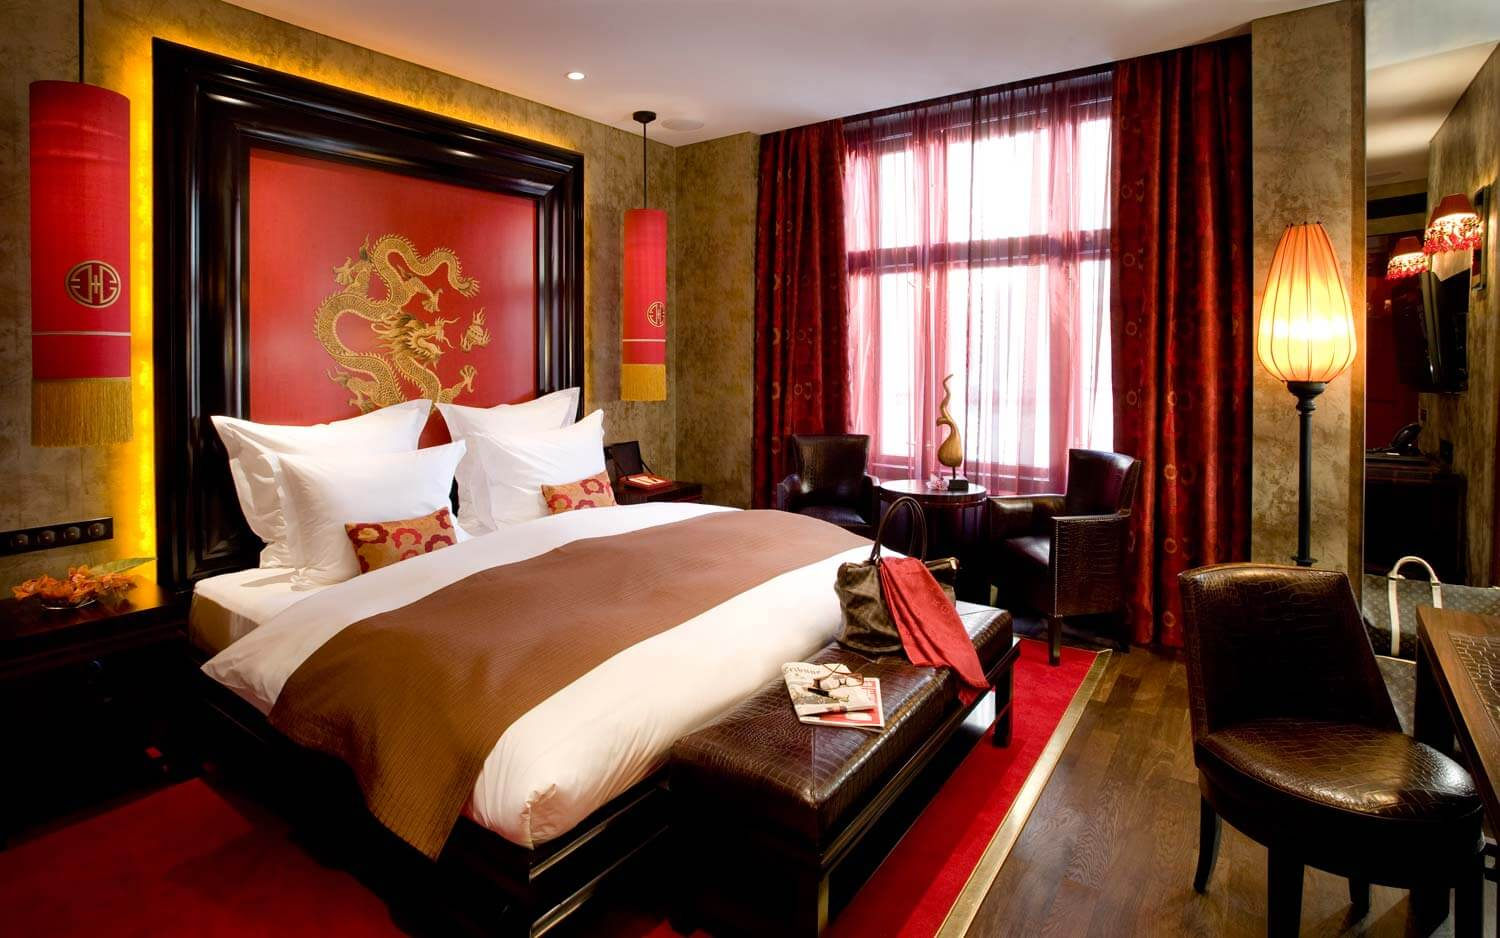 Buddha bar hotel in prague luxury 5 star hotel prague for Design boutique hotel prag